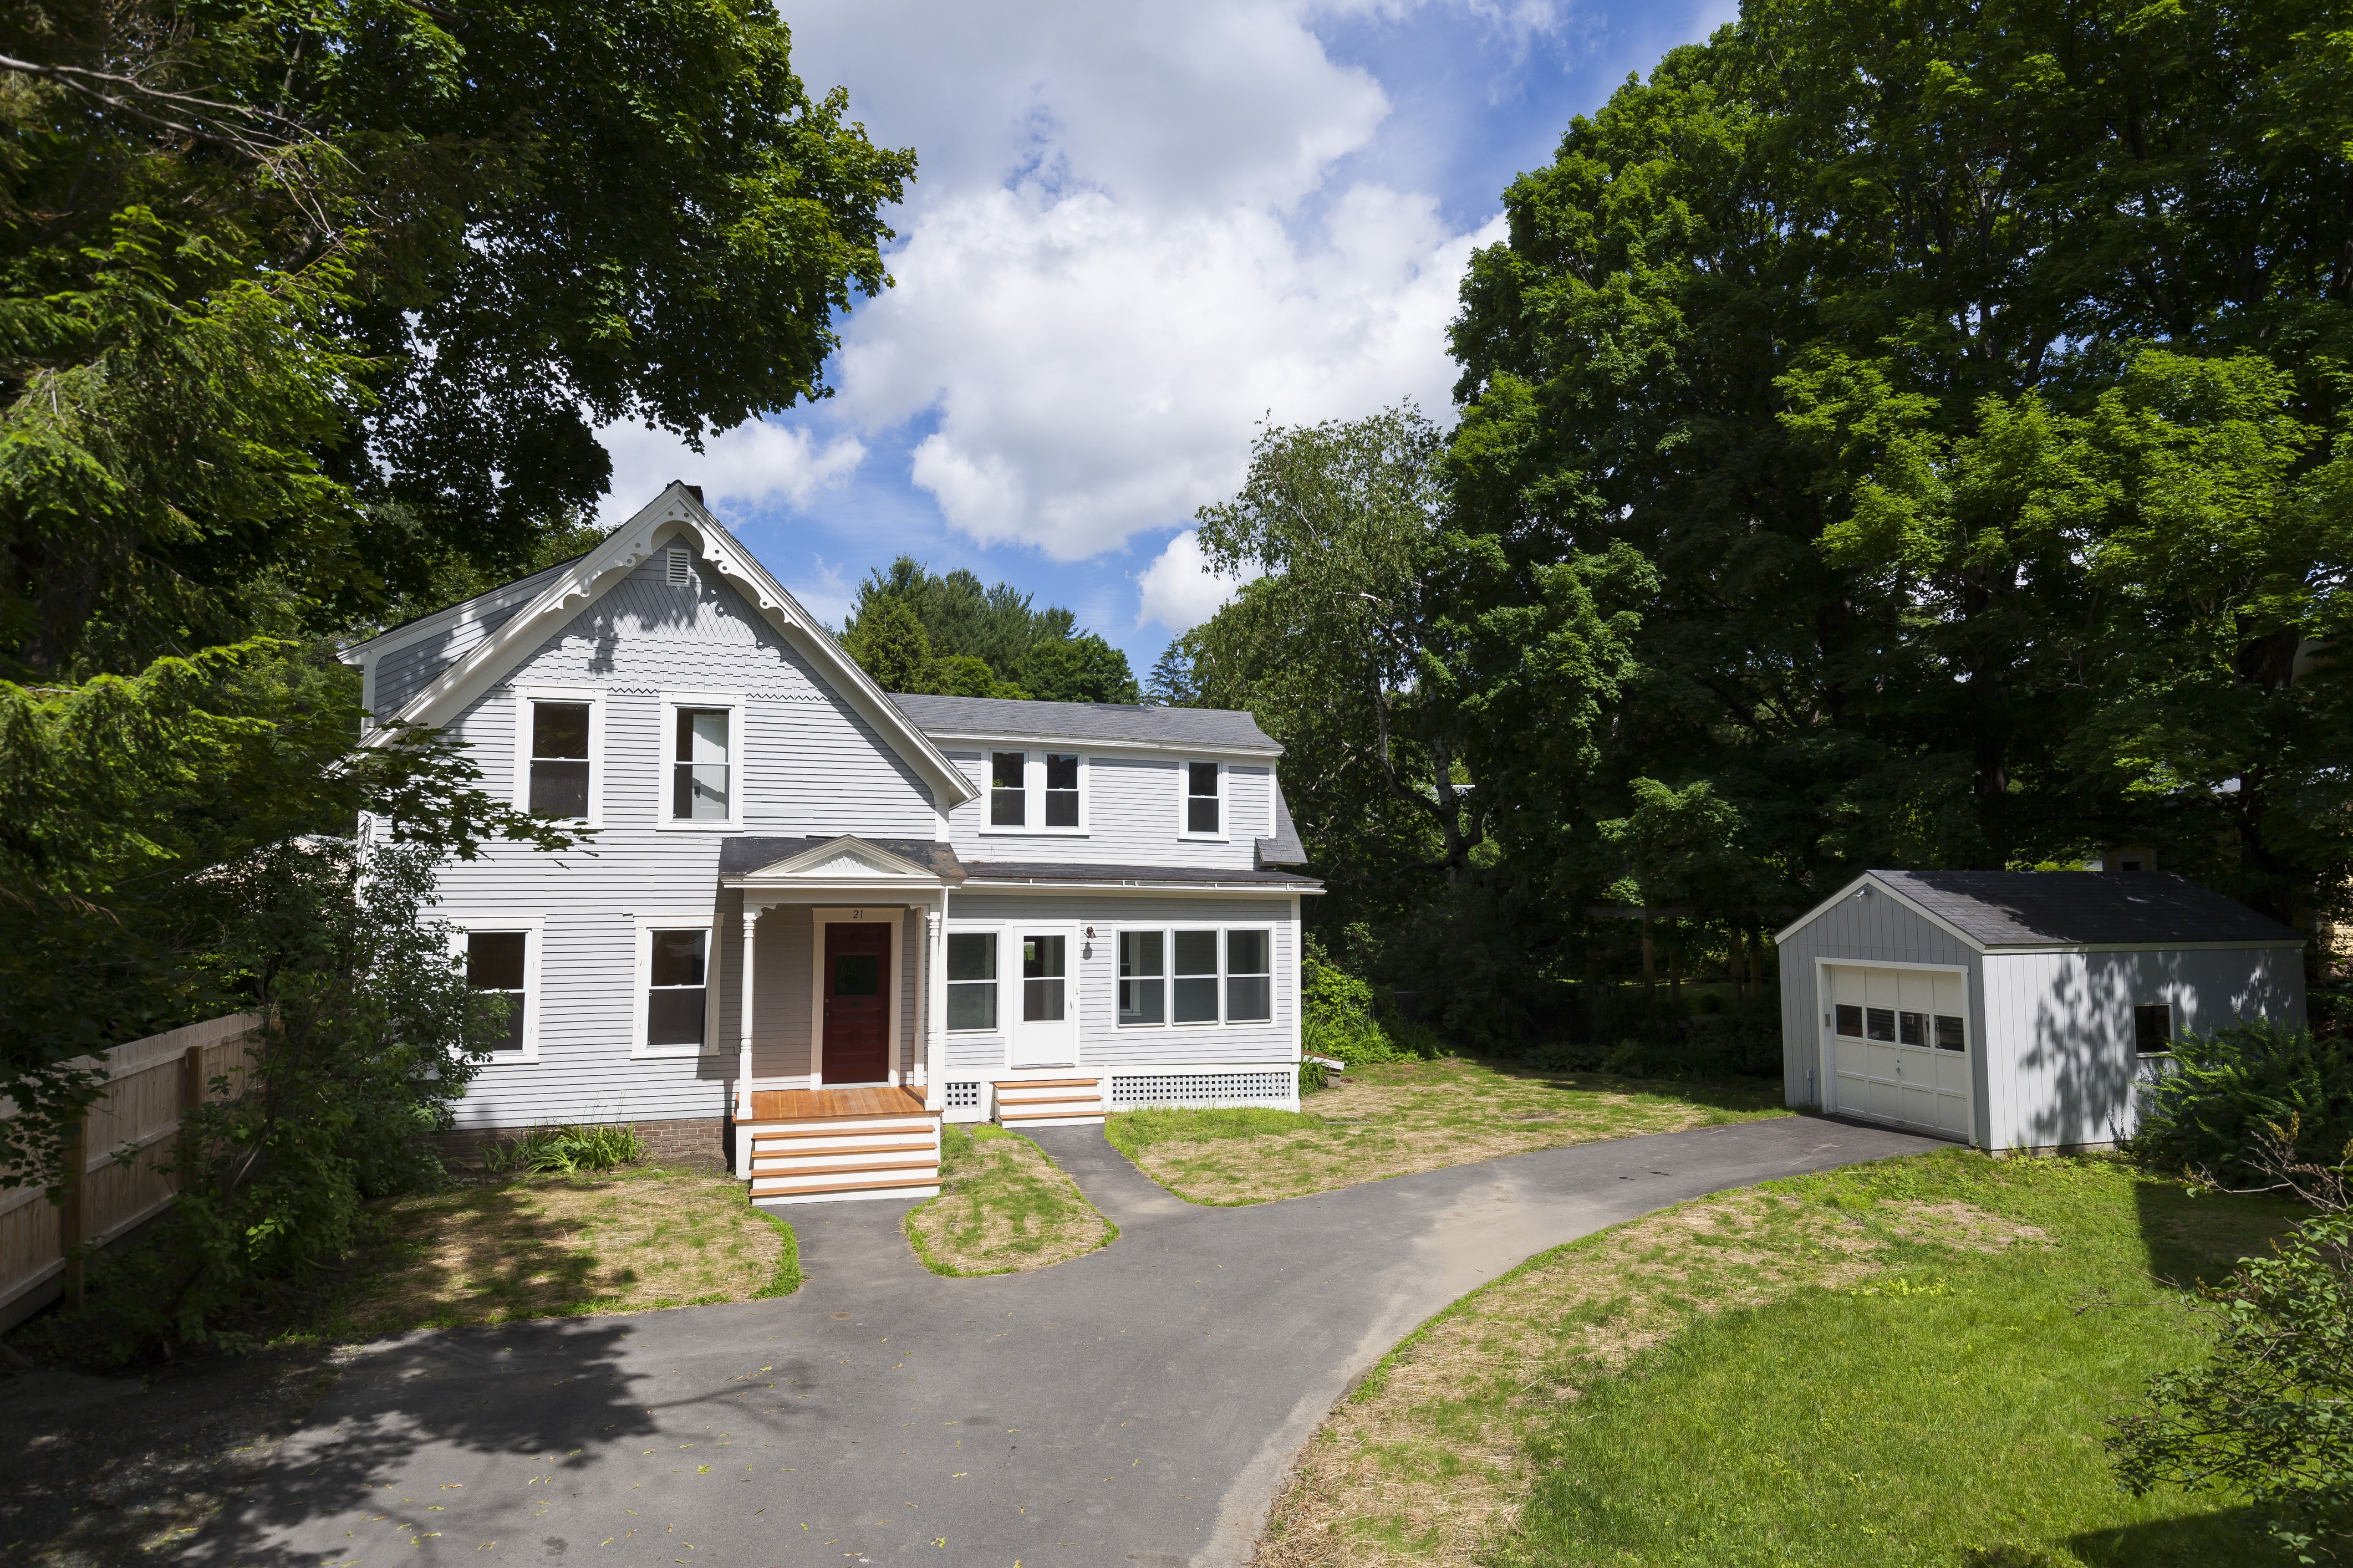 Single Family Home for Sale at 21 Elm Street, Lebanon Lebanon, New Hampshire 03766 United States